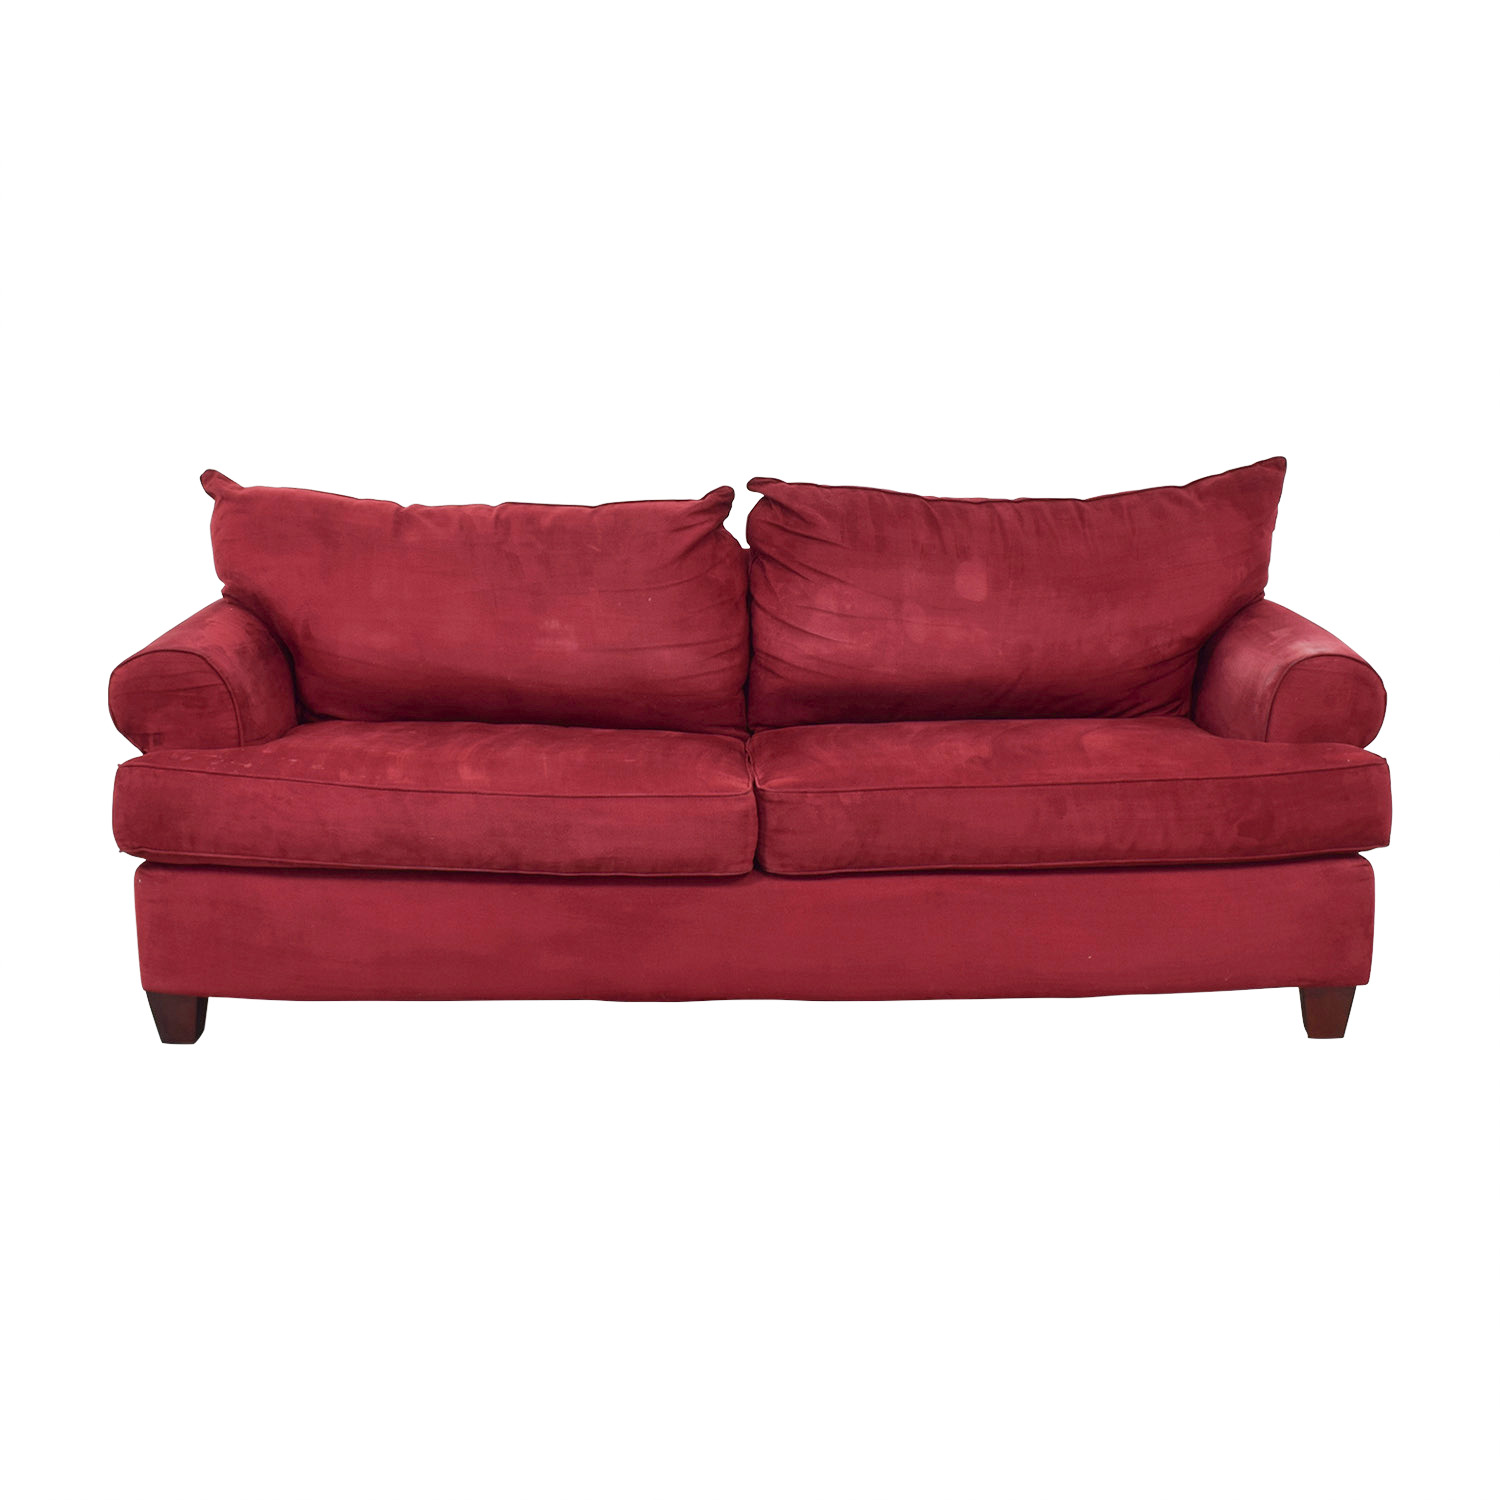 Rooms To Go Rooms To Go Red Two-Cushion Sofa price